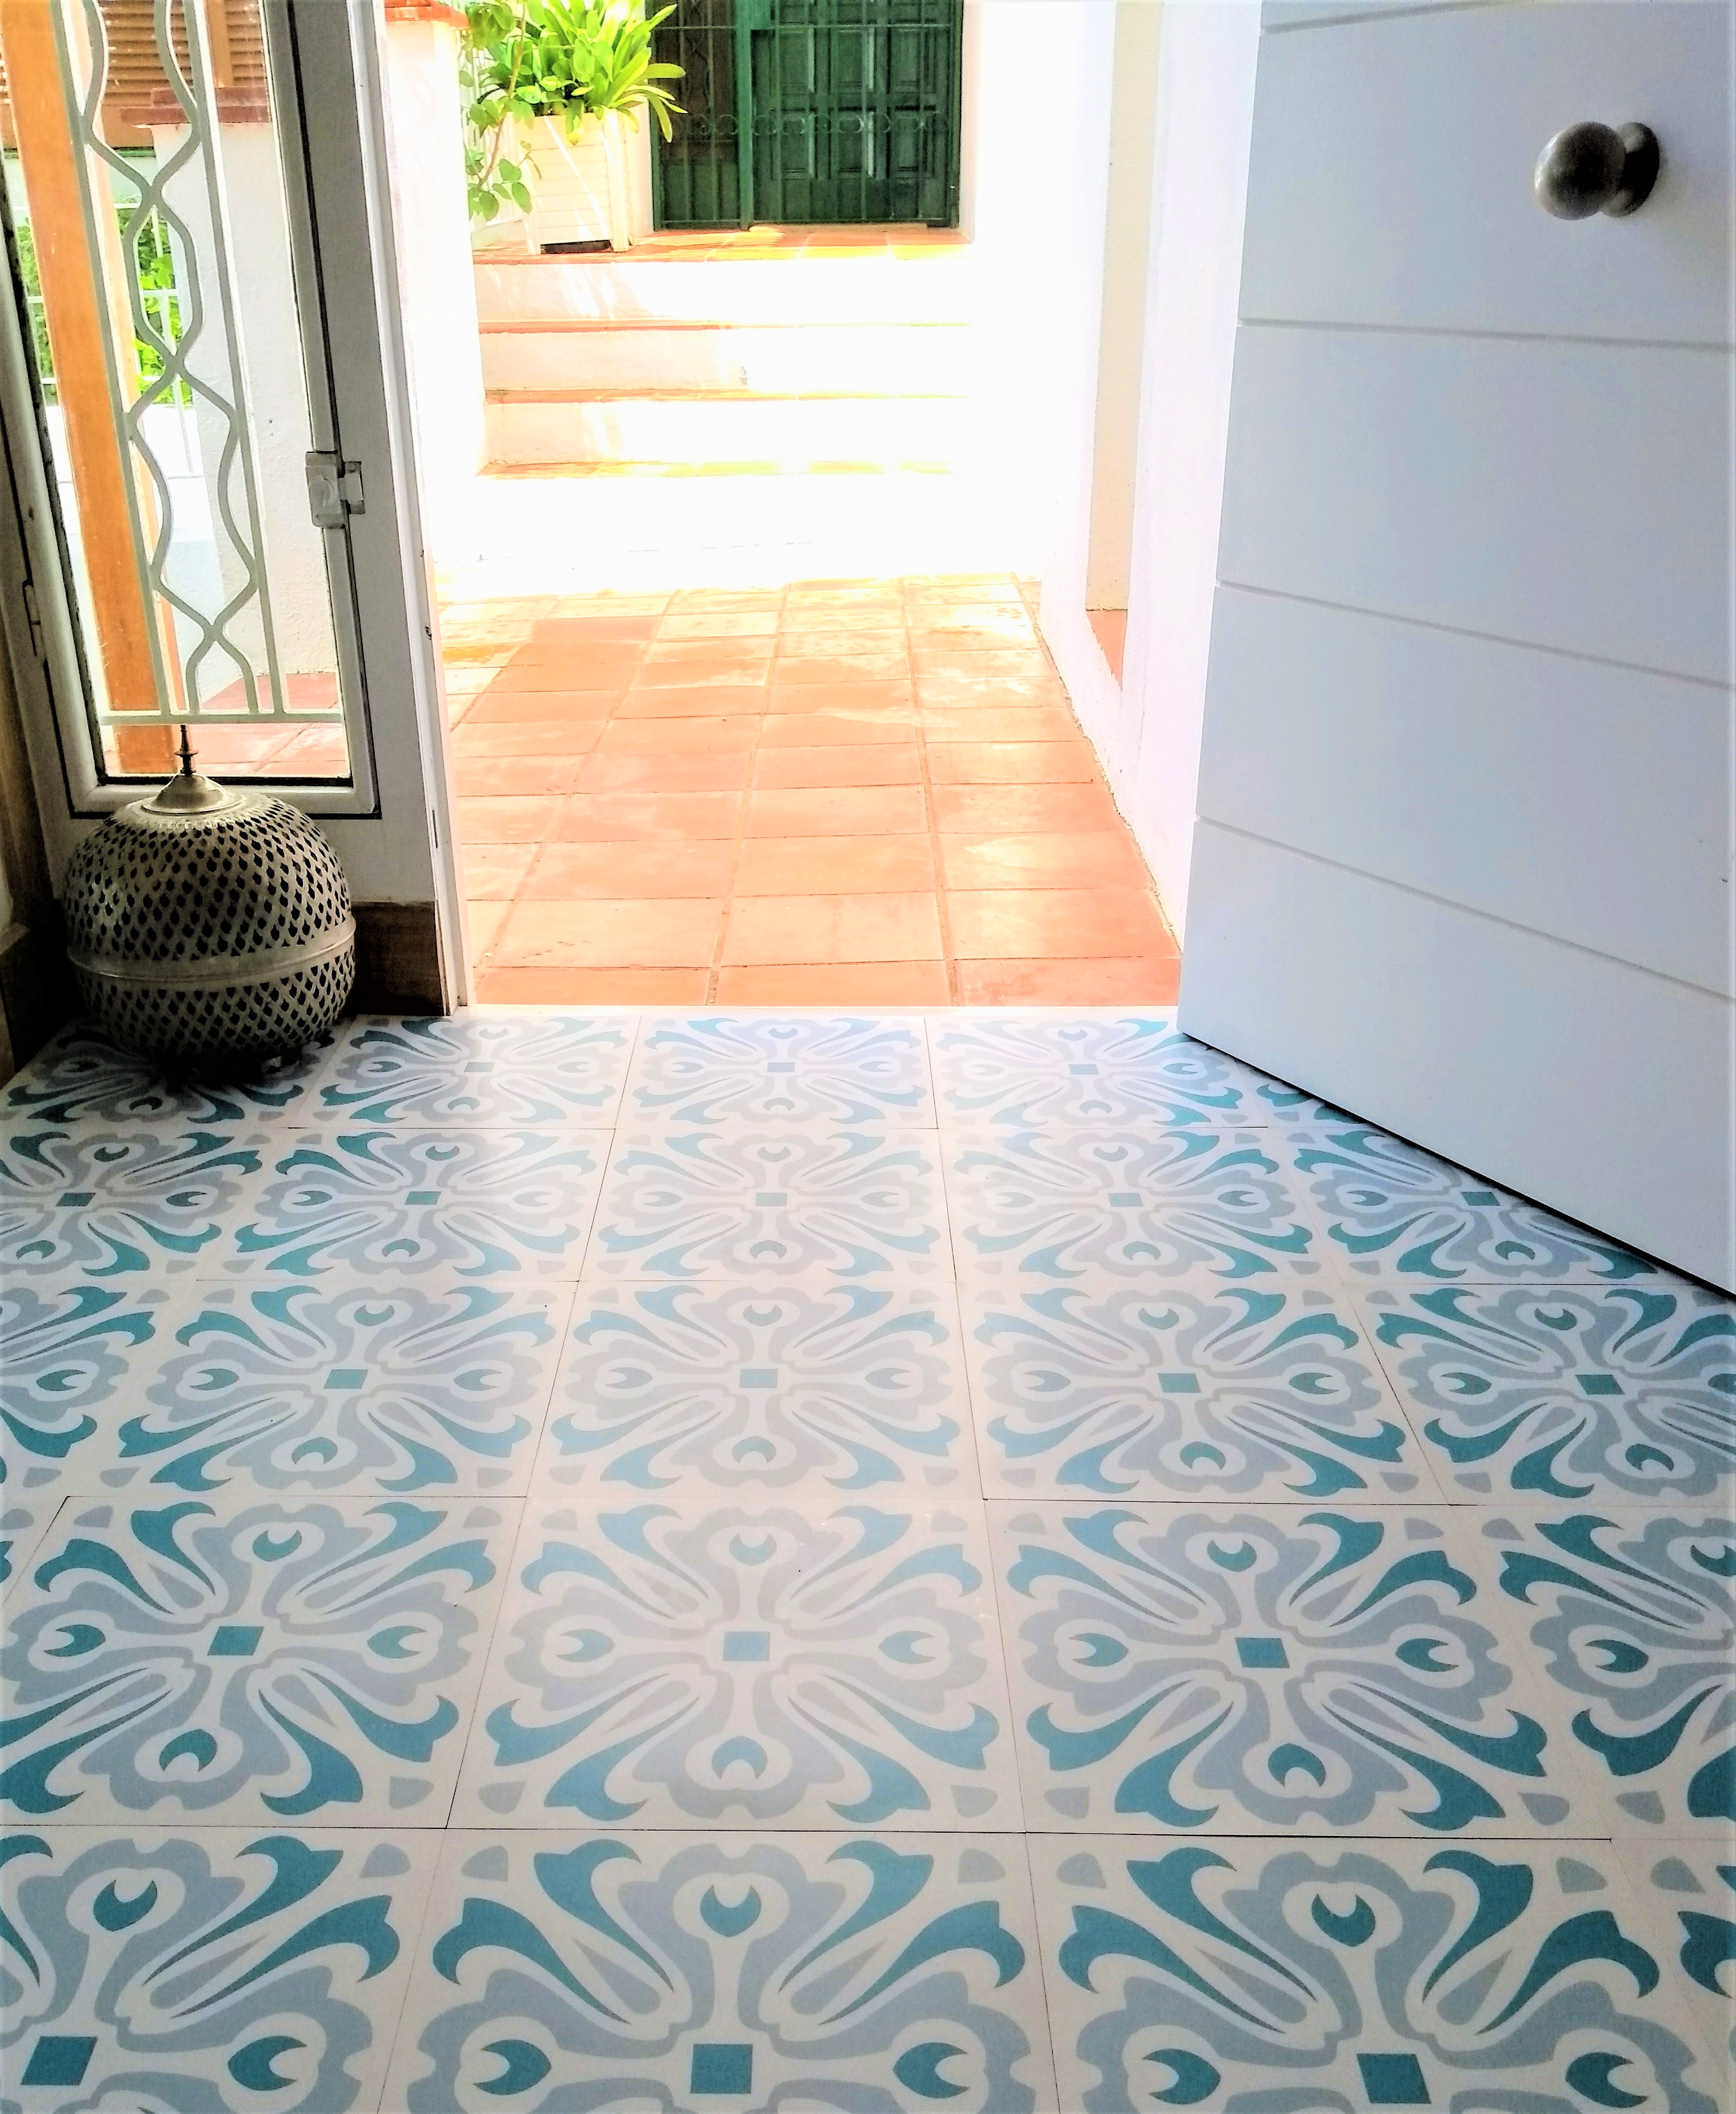 Zazous Havana Day Vinyl Floor Tiles